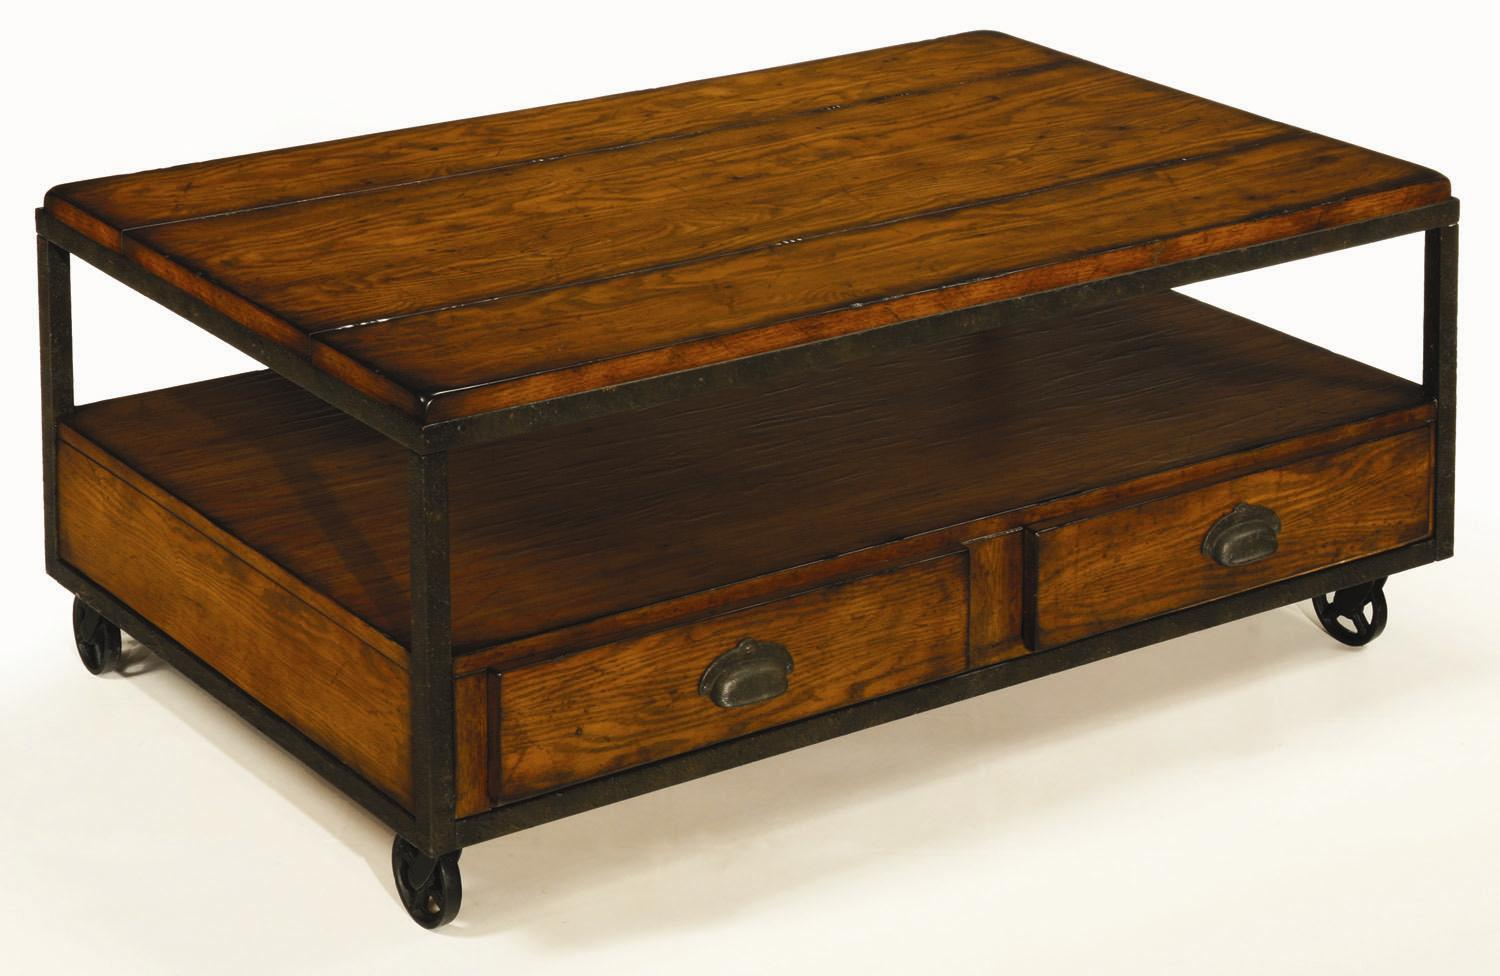 Hammary Baja Rectangular Storage Cocktail Table - Item Number: T2075207-00